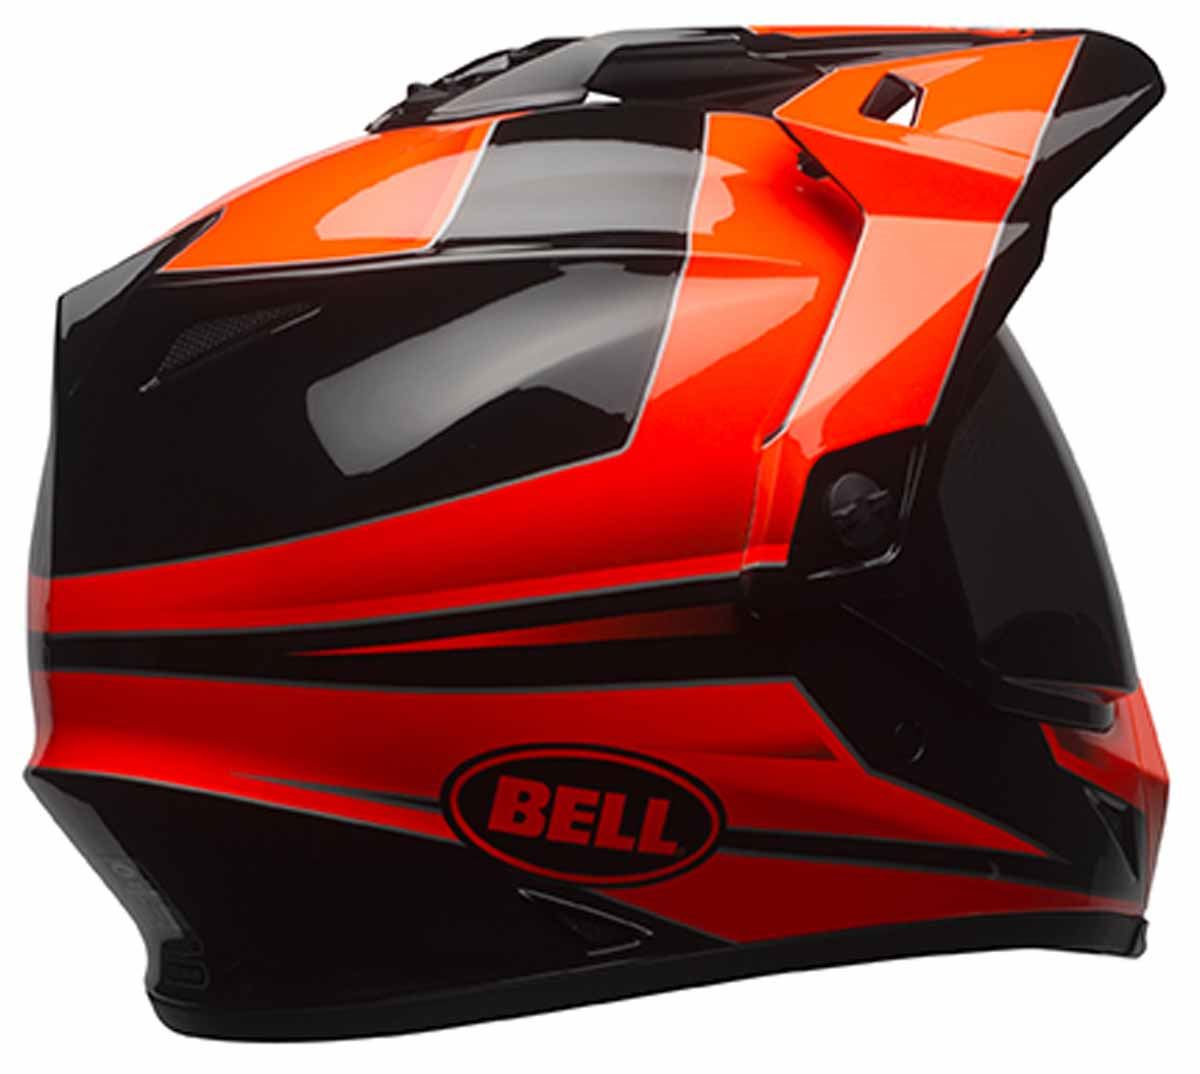 bell mx 9 adventure dual sport adv touring motorcycle dot helmet ebay. Black Bedroom Furniture Sets. Home Design Ideas